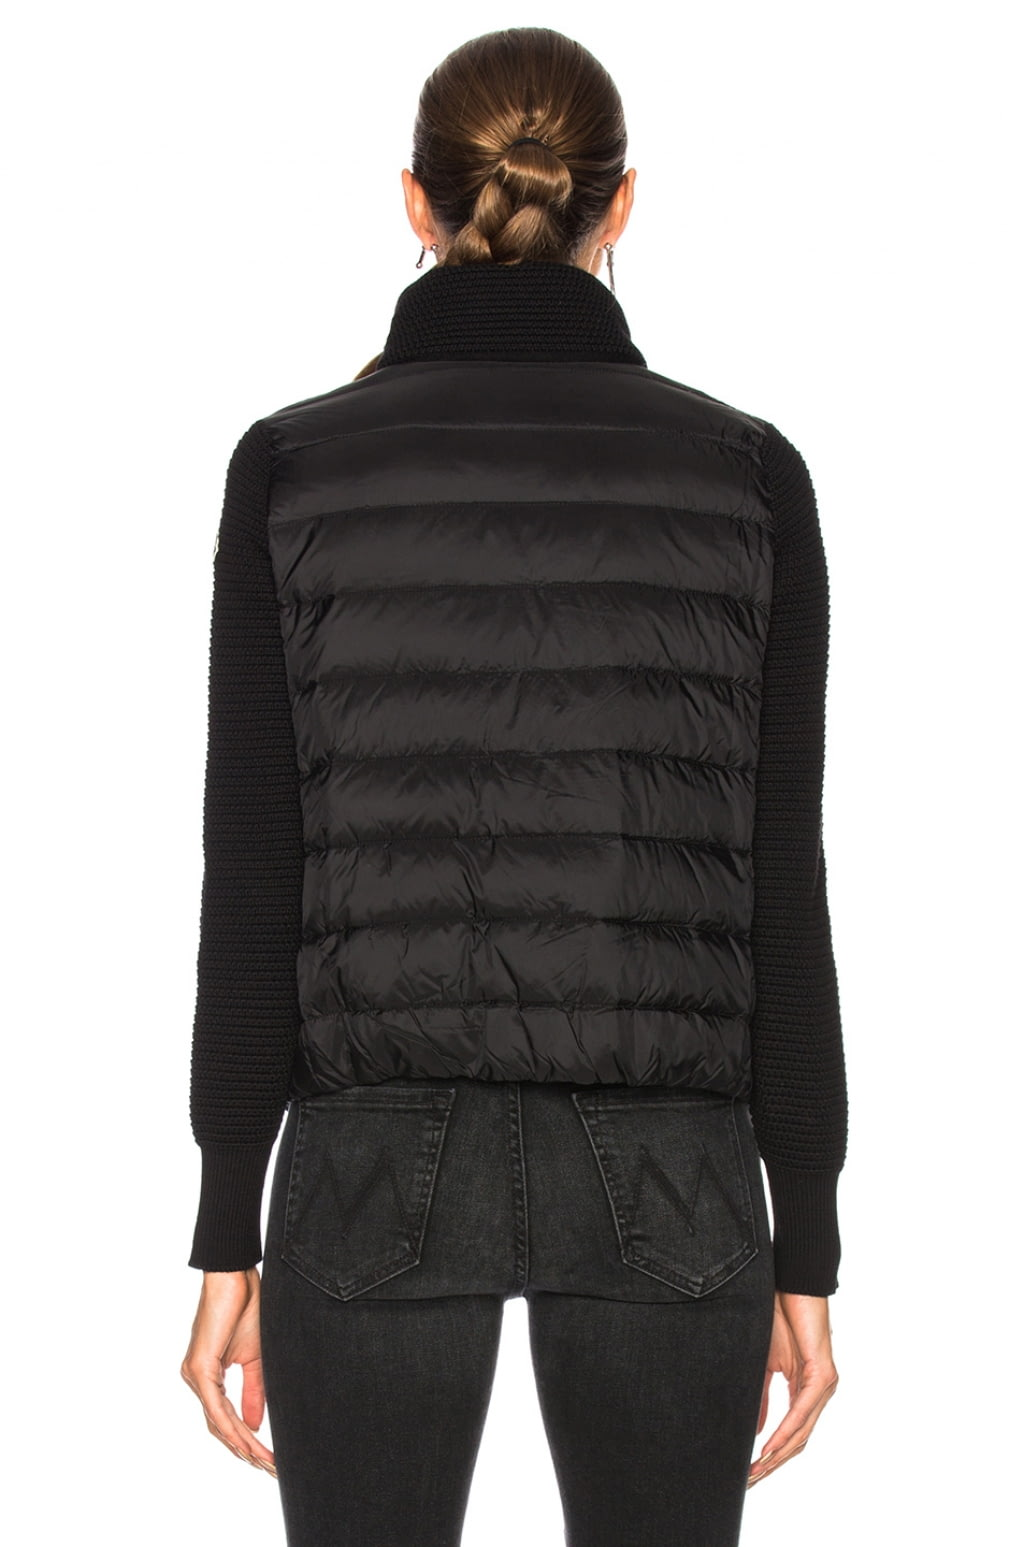 moncler maglione